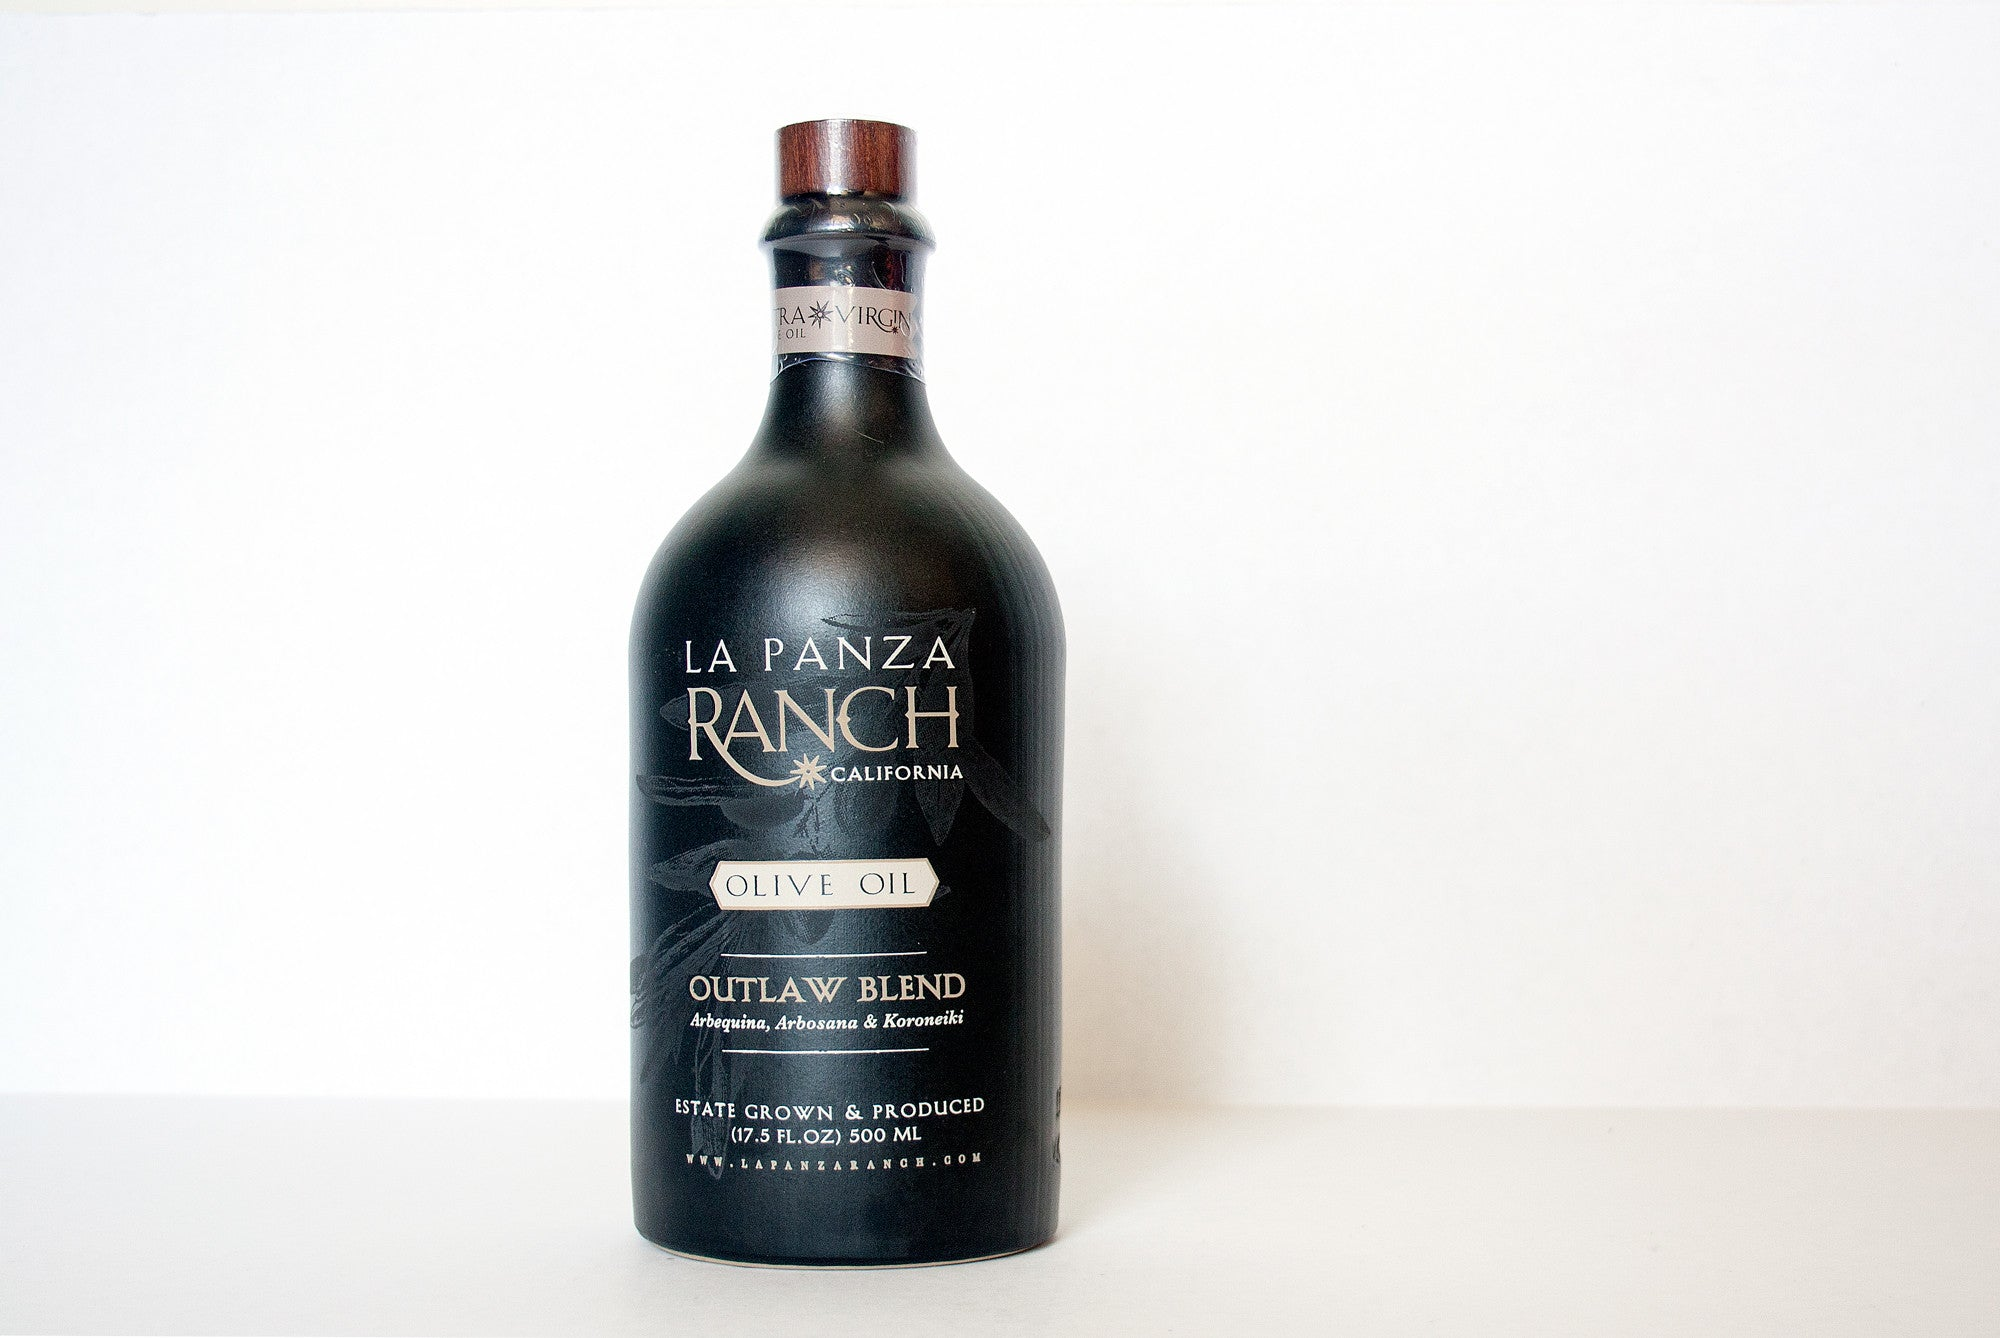 La Panza Ranch Outlaw Blend Olive Oil